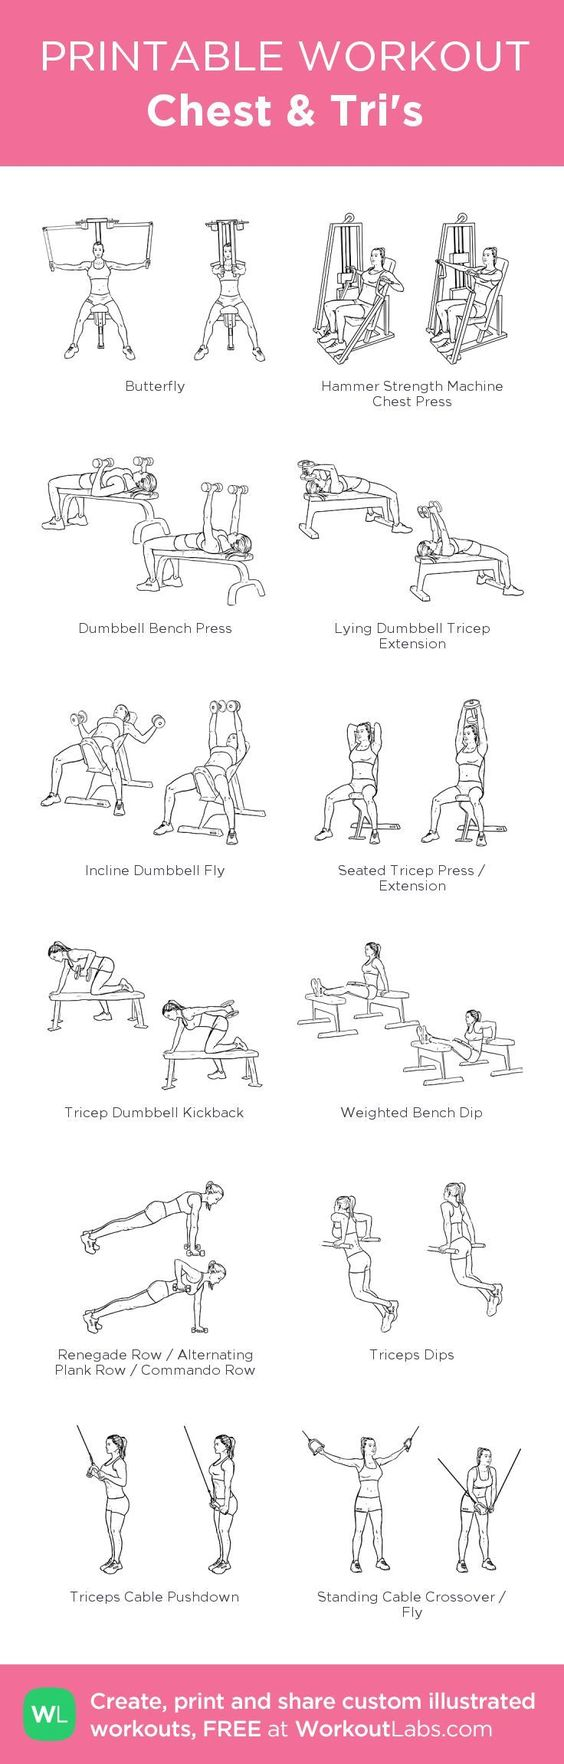 Chest Tris: my custom printable workout by @WorkoutLabs #workoutlabs #customworkout: